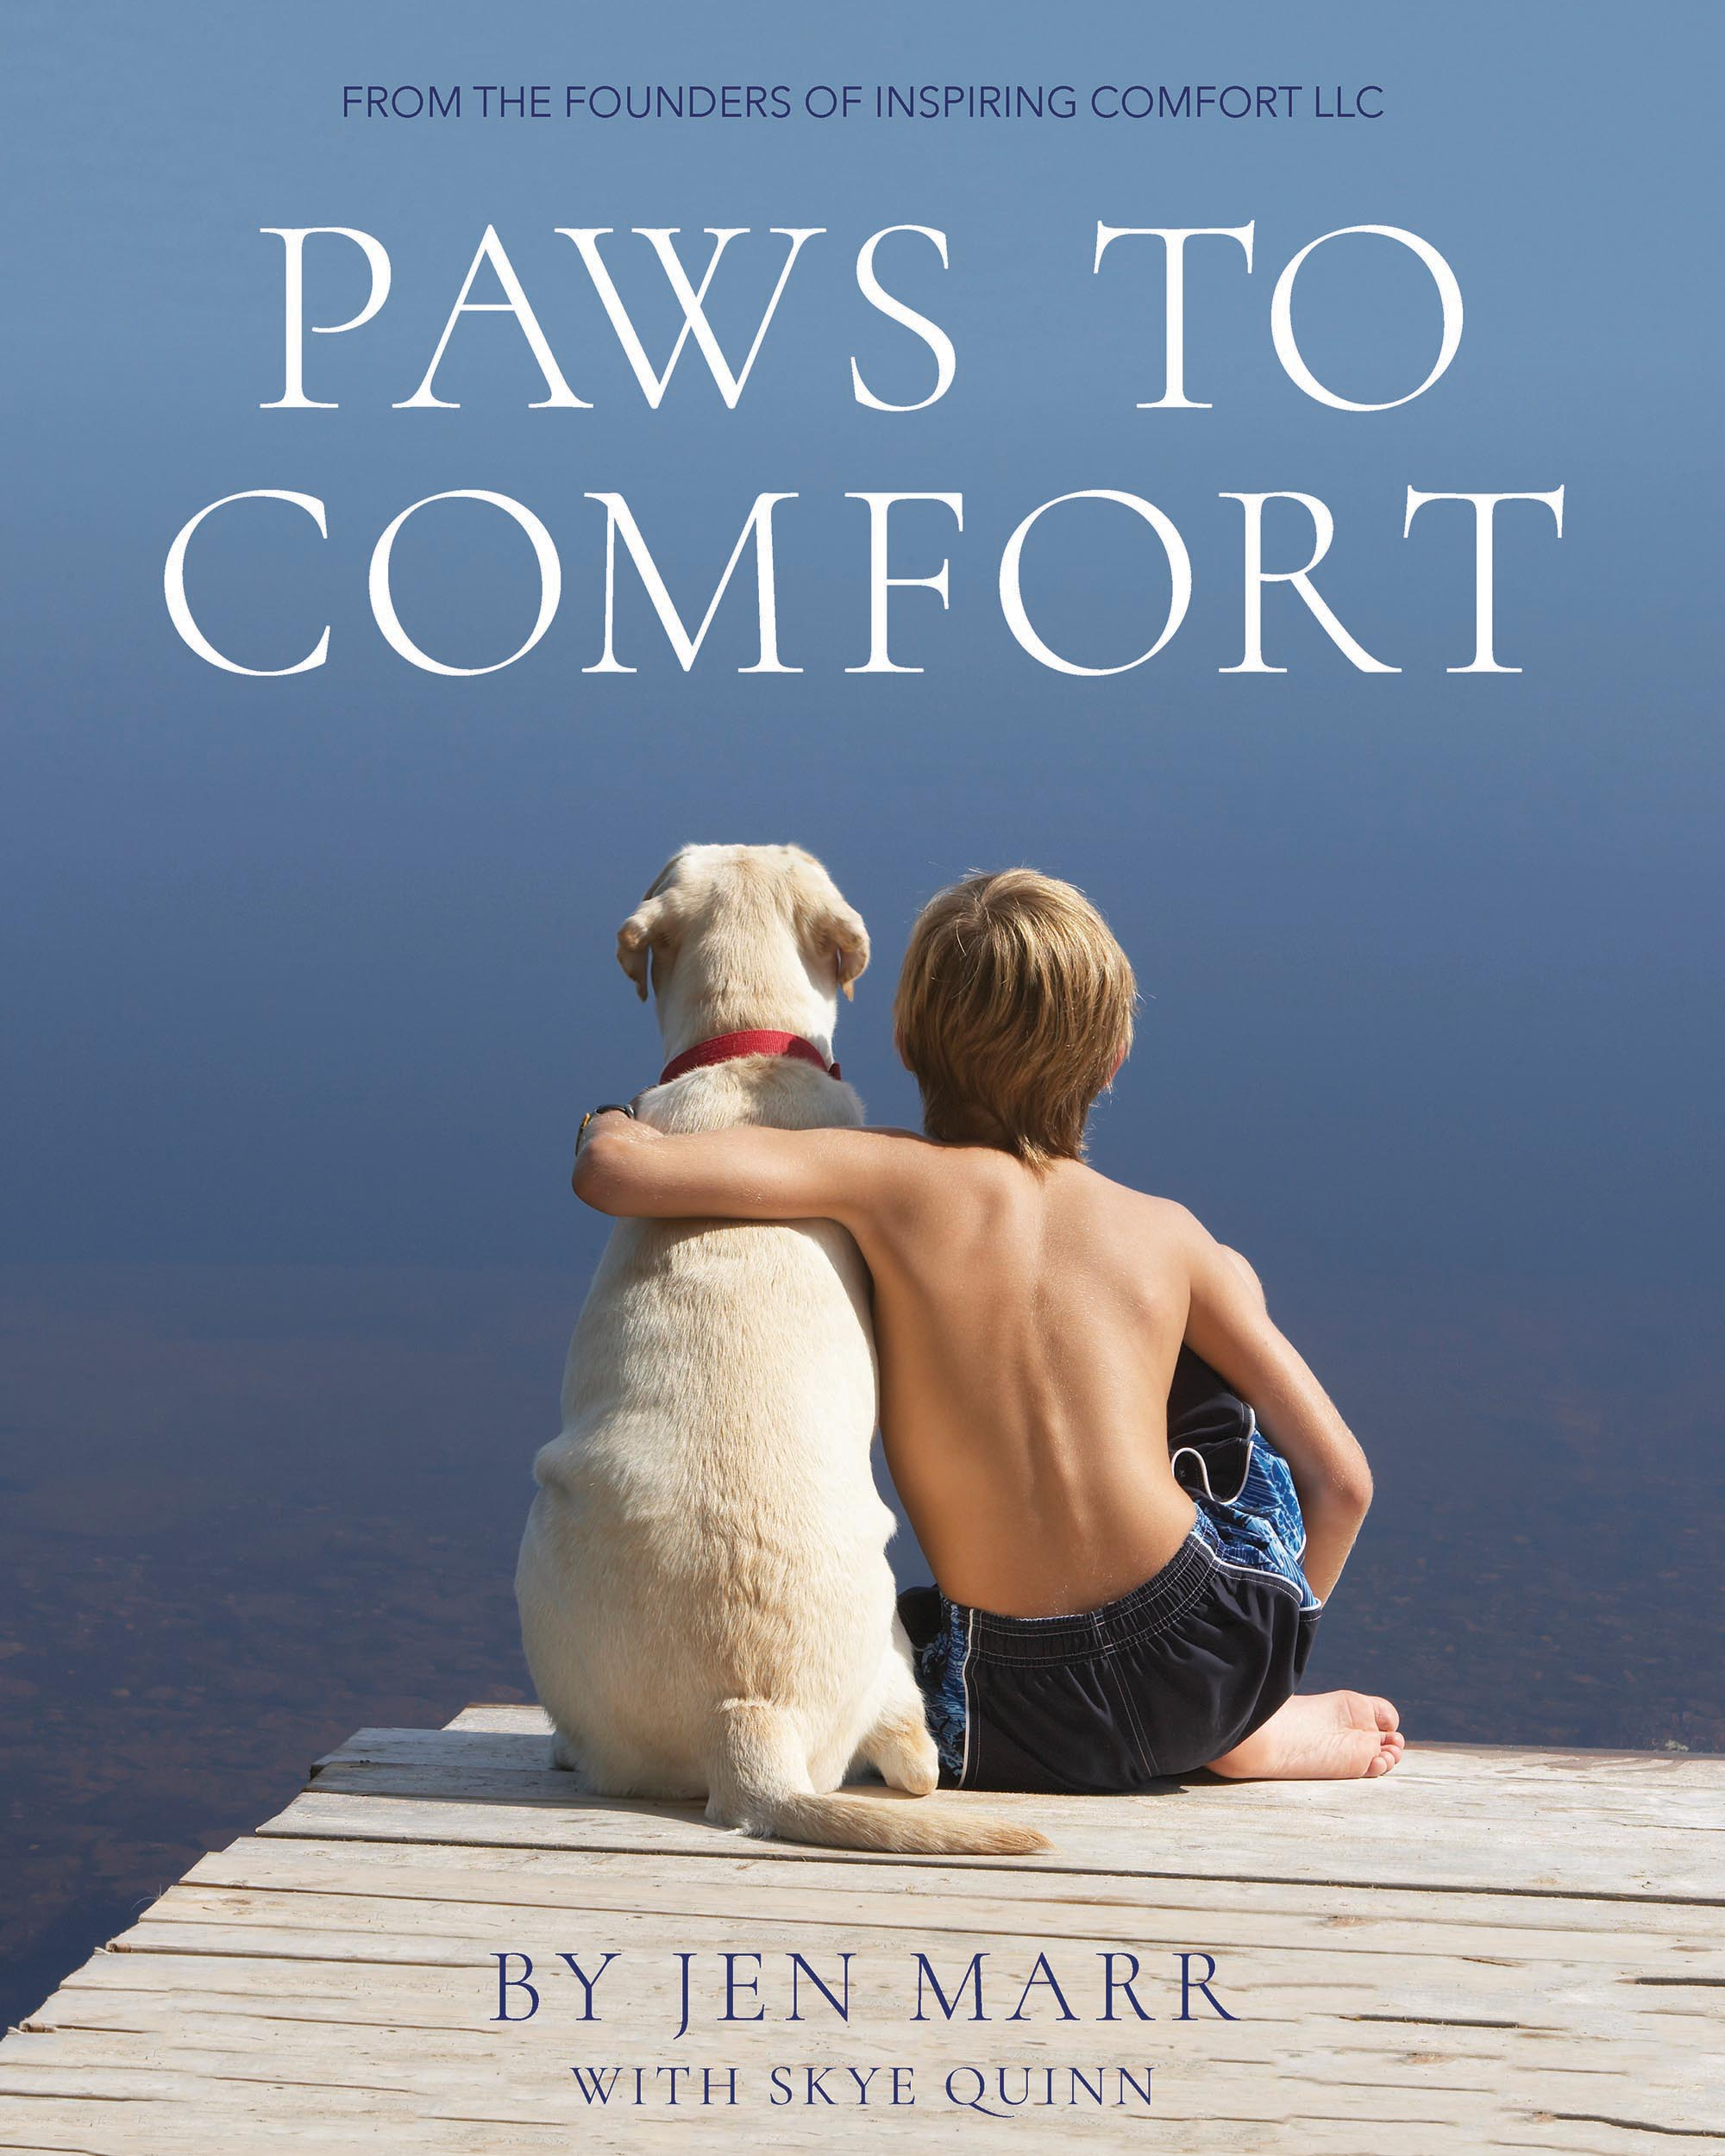 Paws to Comfort  by Jen Marr with Skye Quinn . New Degree Press. Paperback & eBook. Publication date: November 2019